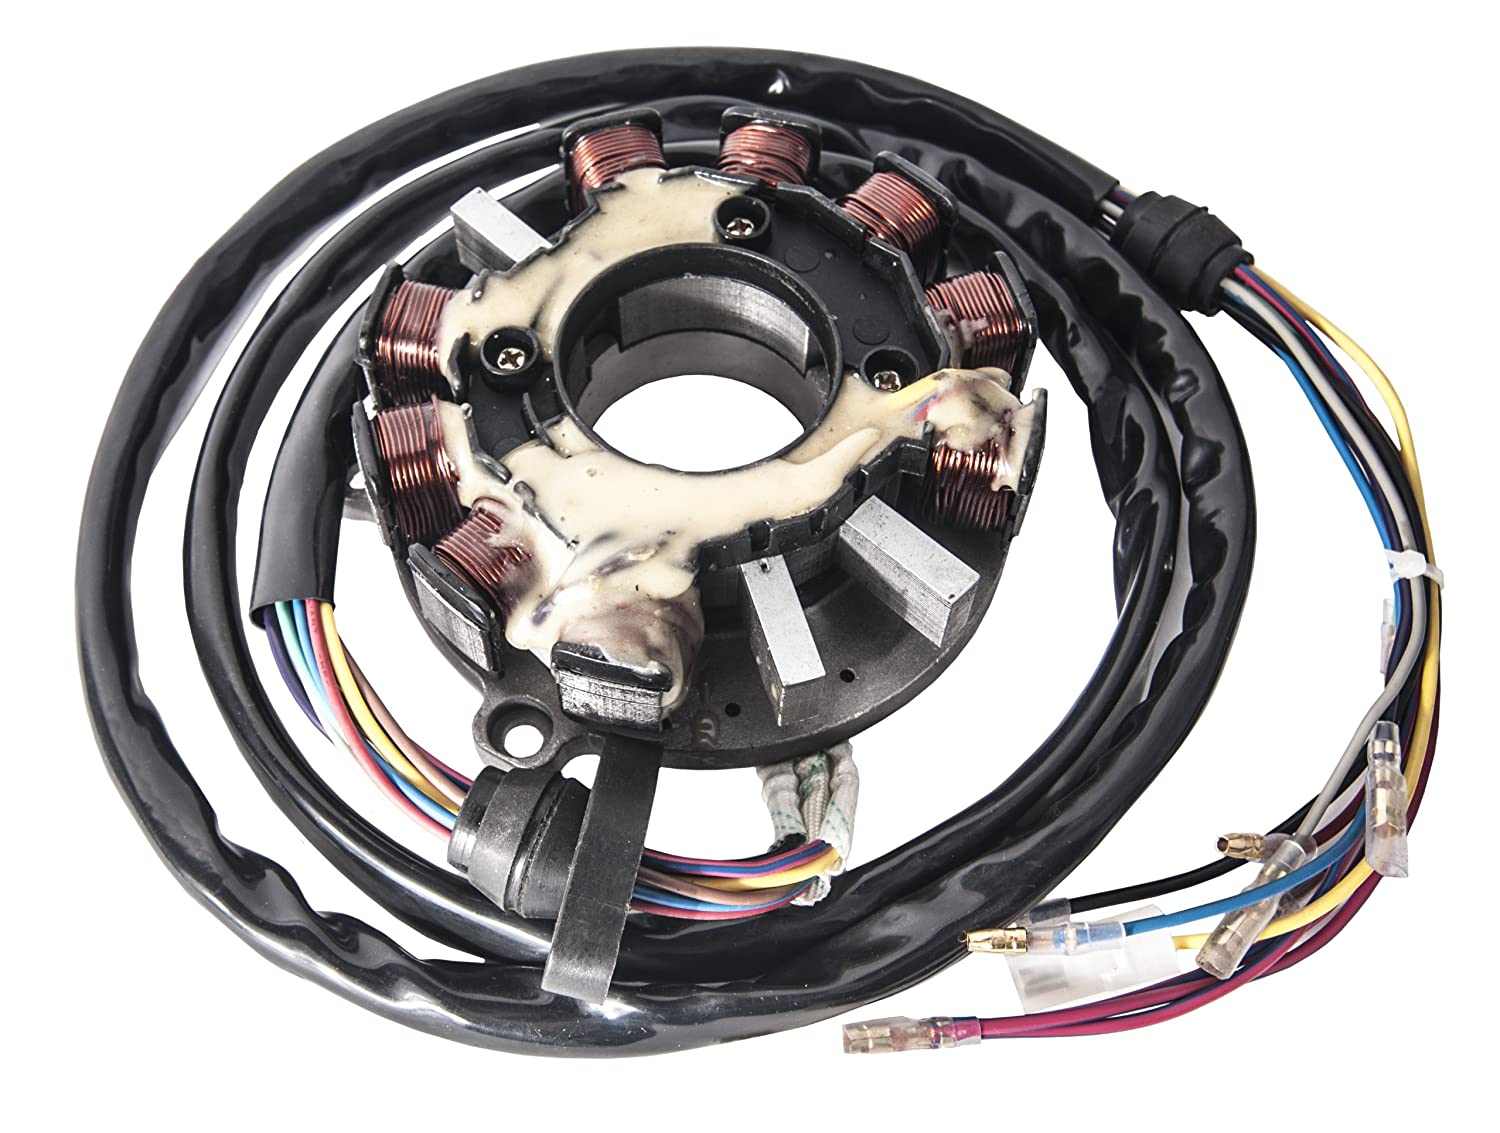 Amazon.com: Polaris Stator SL 900/SLTX/SL 1050/SLXH 4010403 1996 1997 1998:  Automotive